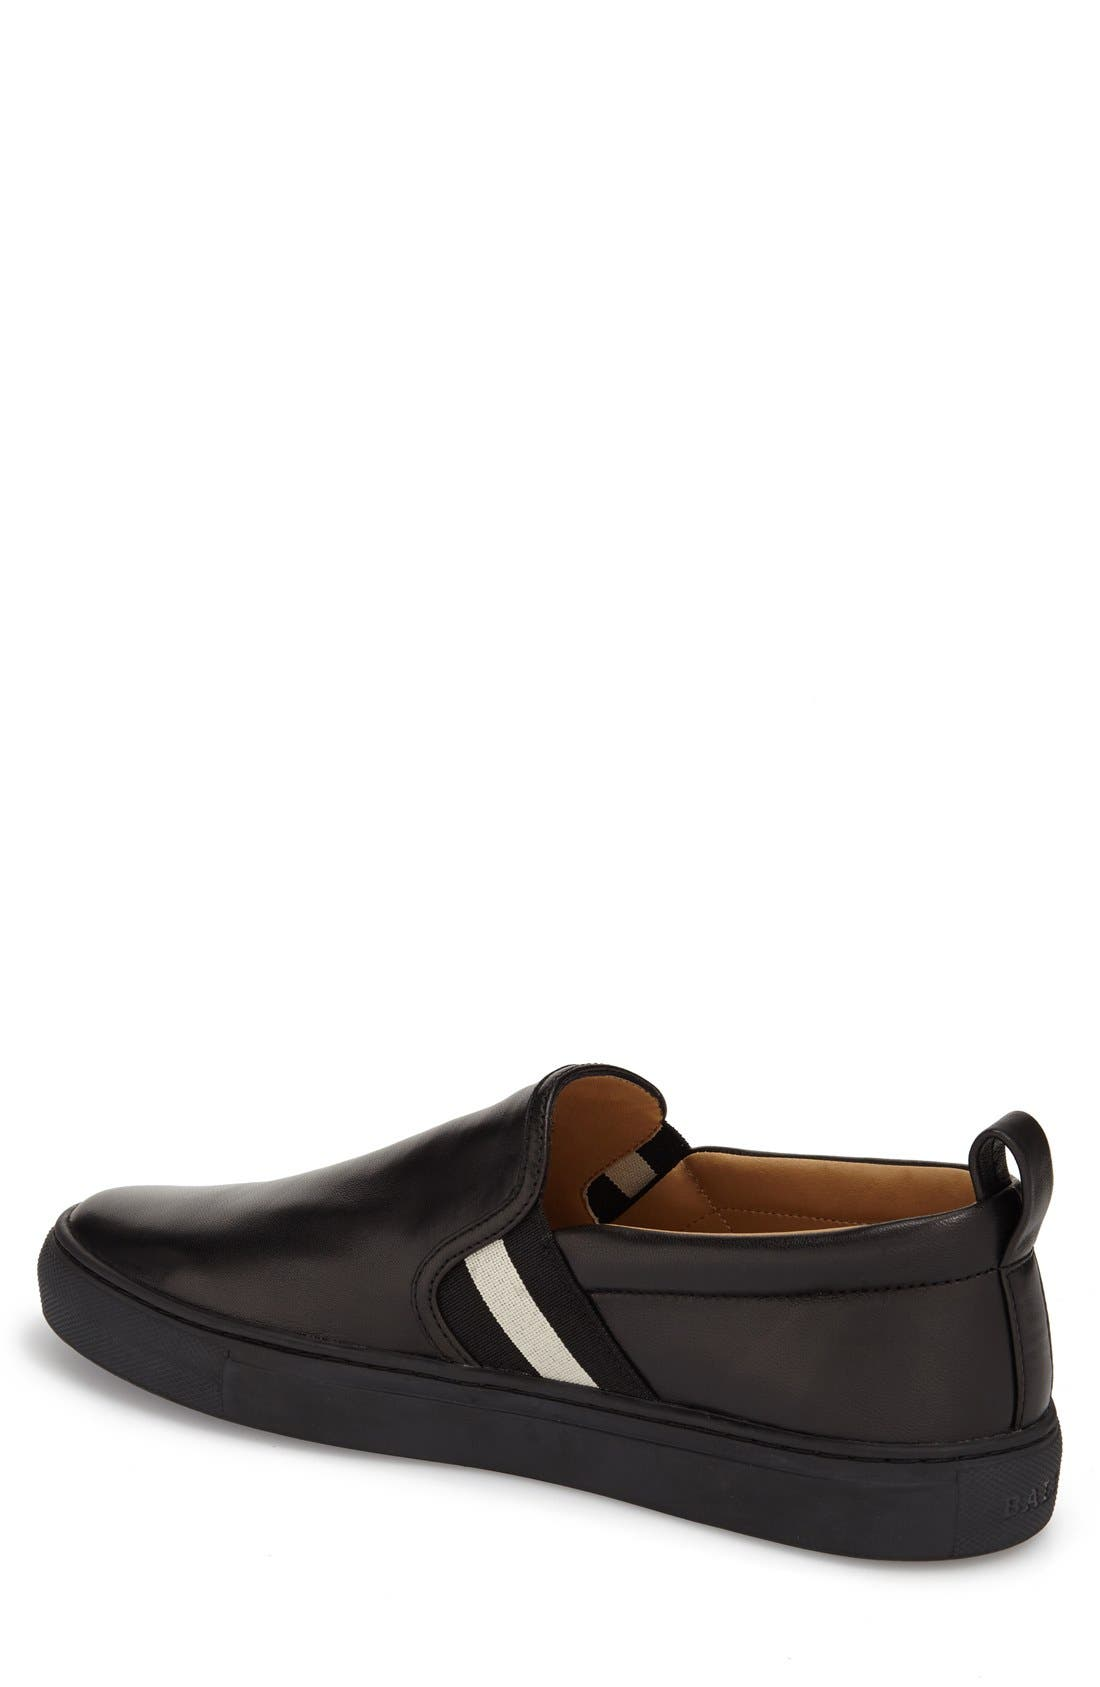 'Herald' Slip-On,                             Alternate thumbnail 2, color,                             BLACK LEATHER